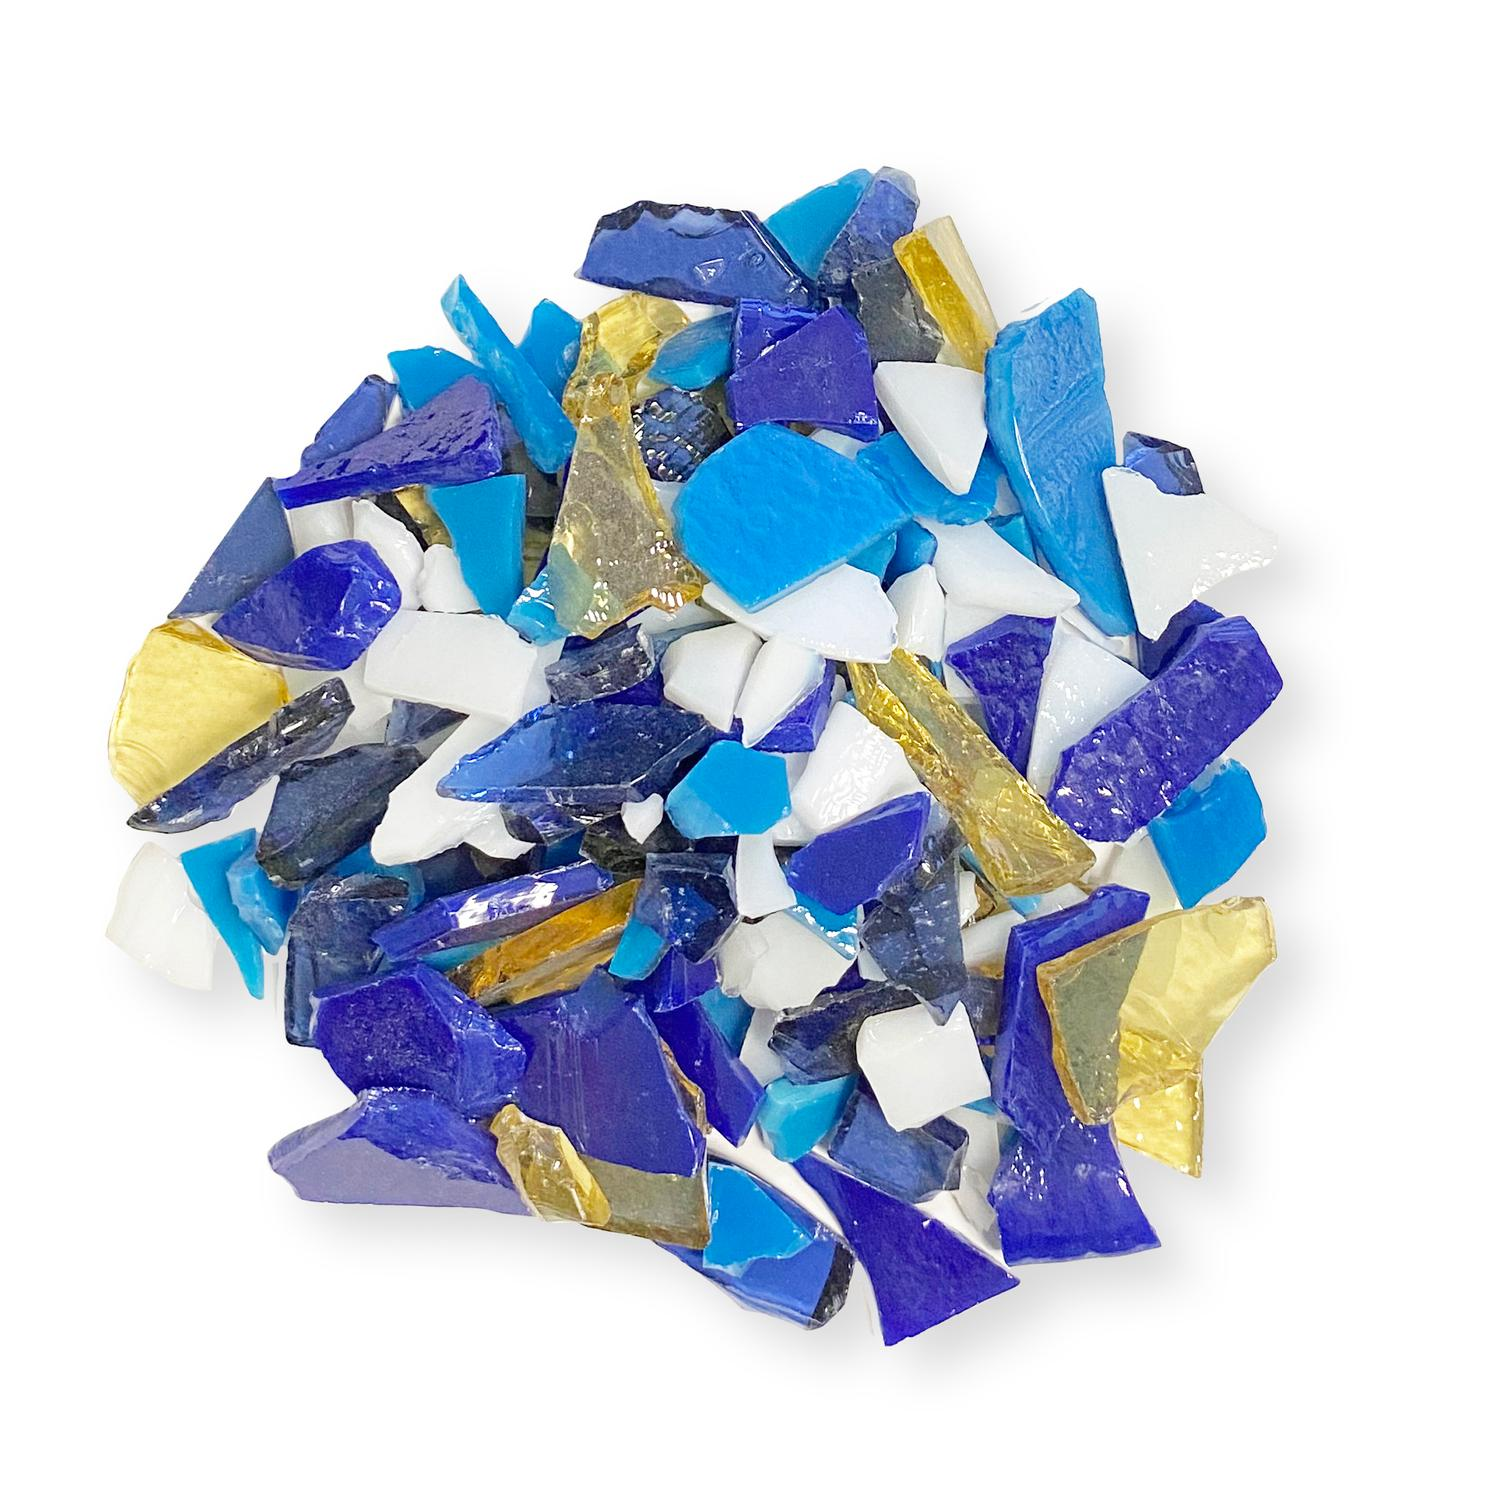 5 oz Fuseworks Mosaic Chunks Assortment - 90 COE